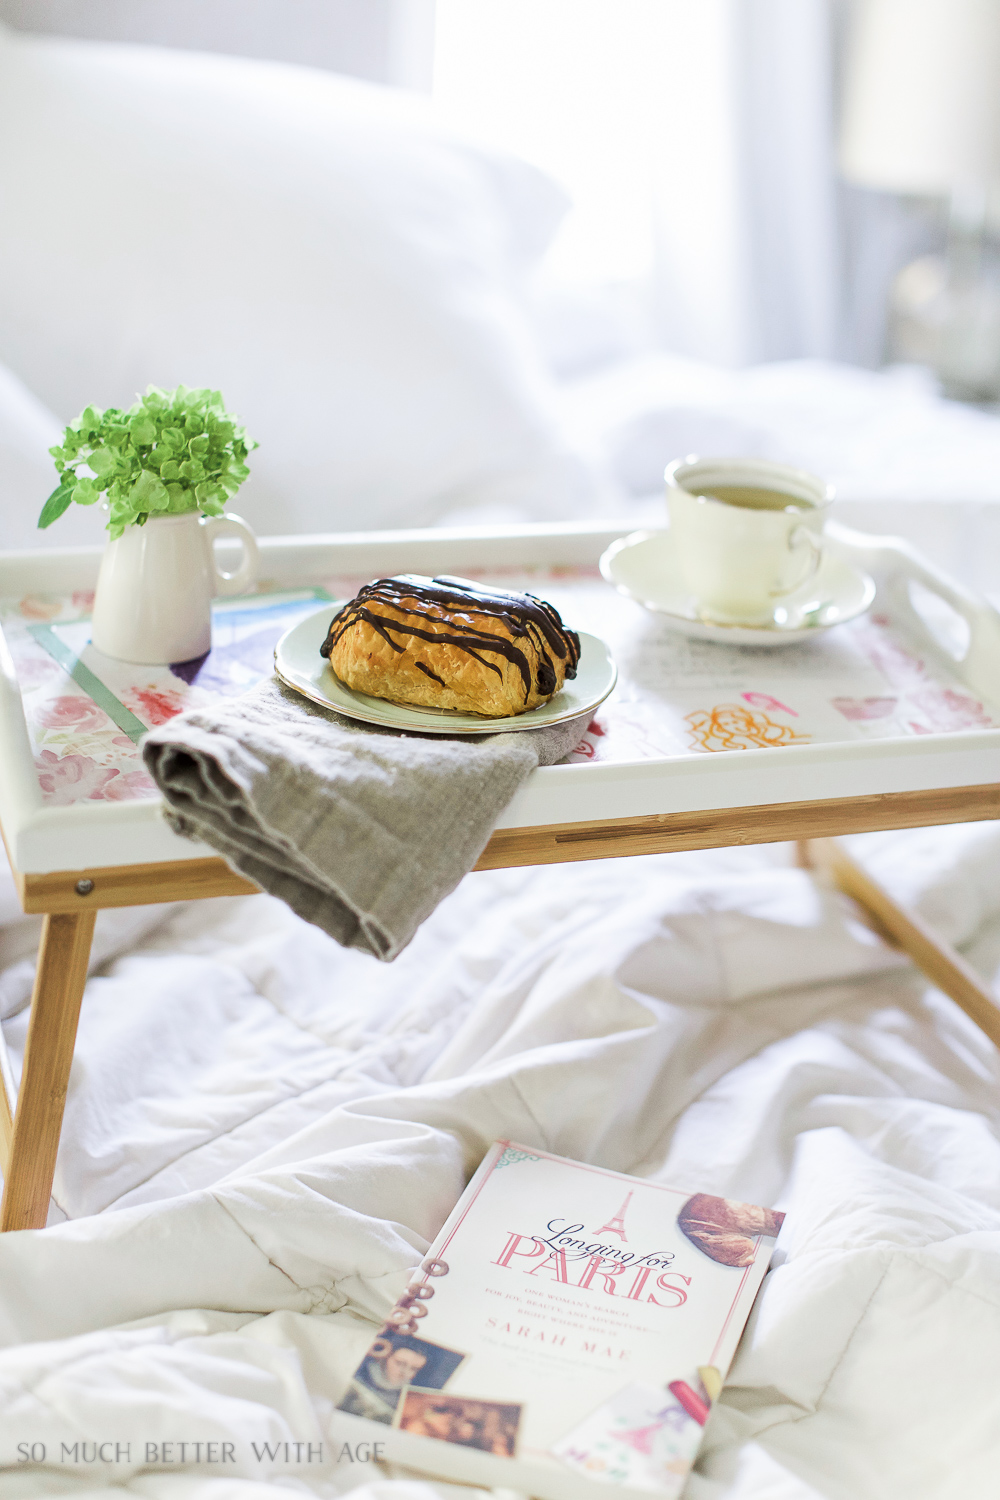 Mother's Day breakfast-in-bed tray with decoupaged kids' art  / Paris book on bed- So Much Better With Age